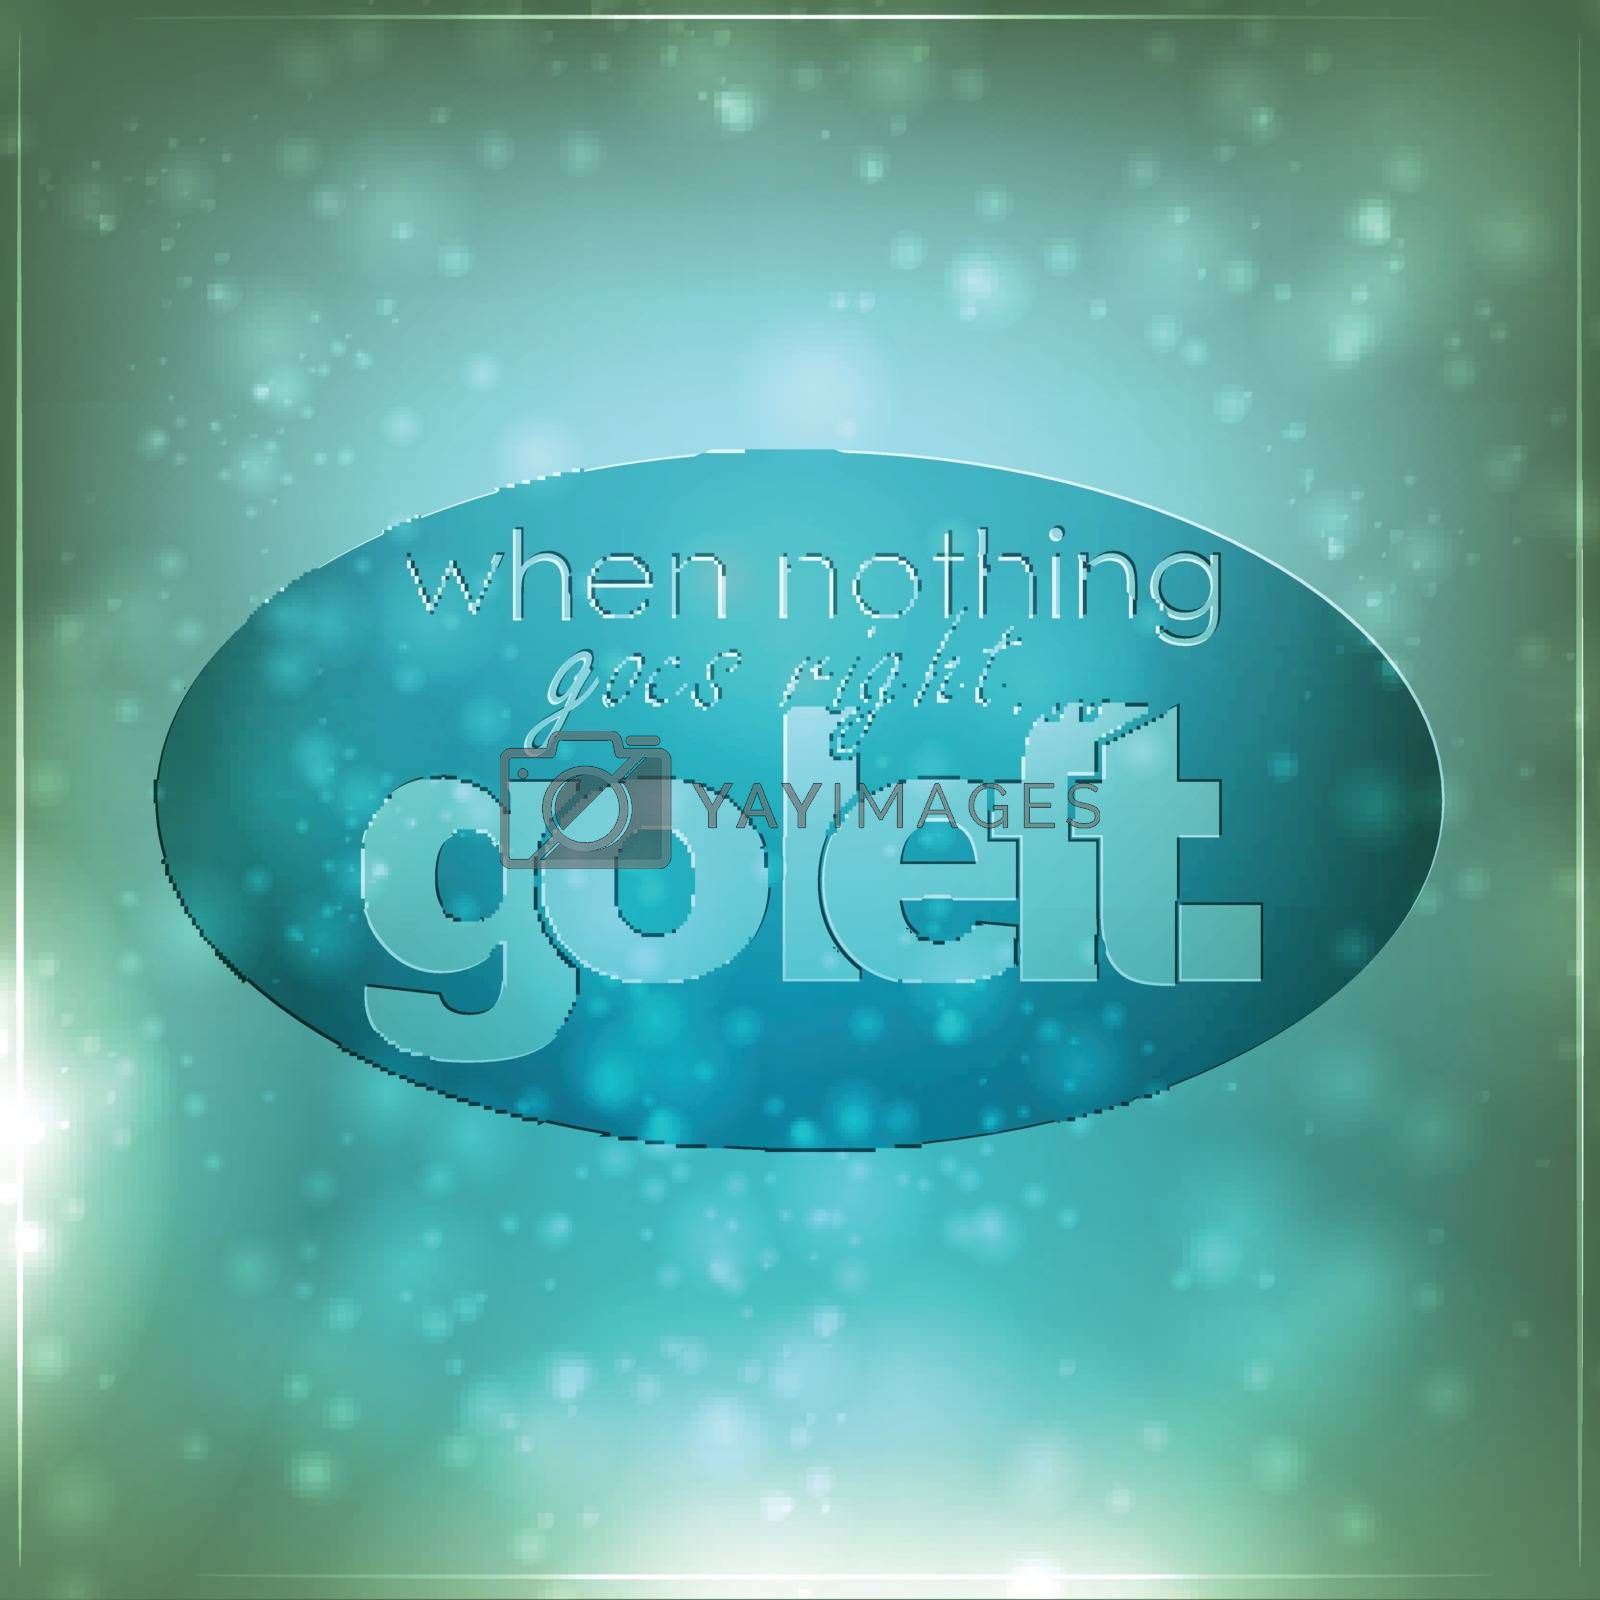 Royalty free image of When nothing goes right, go left by maxmitzu